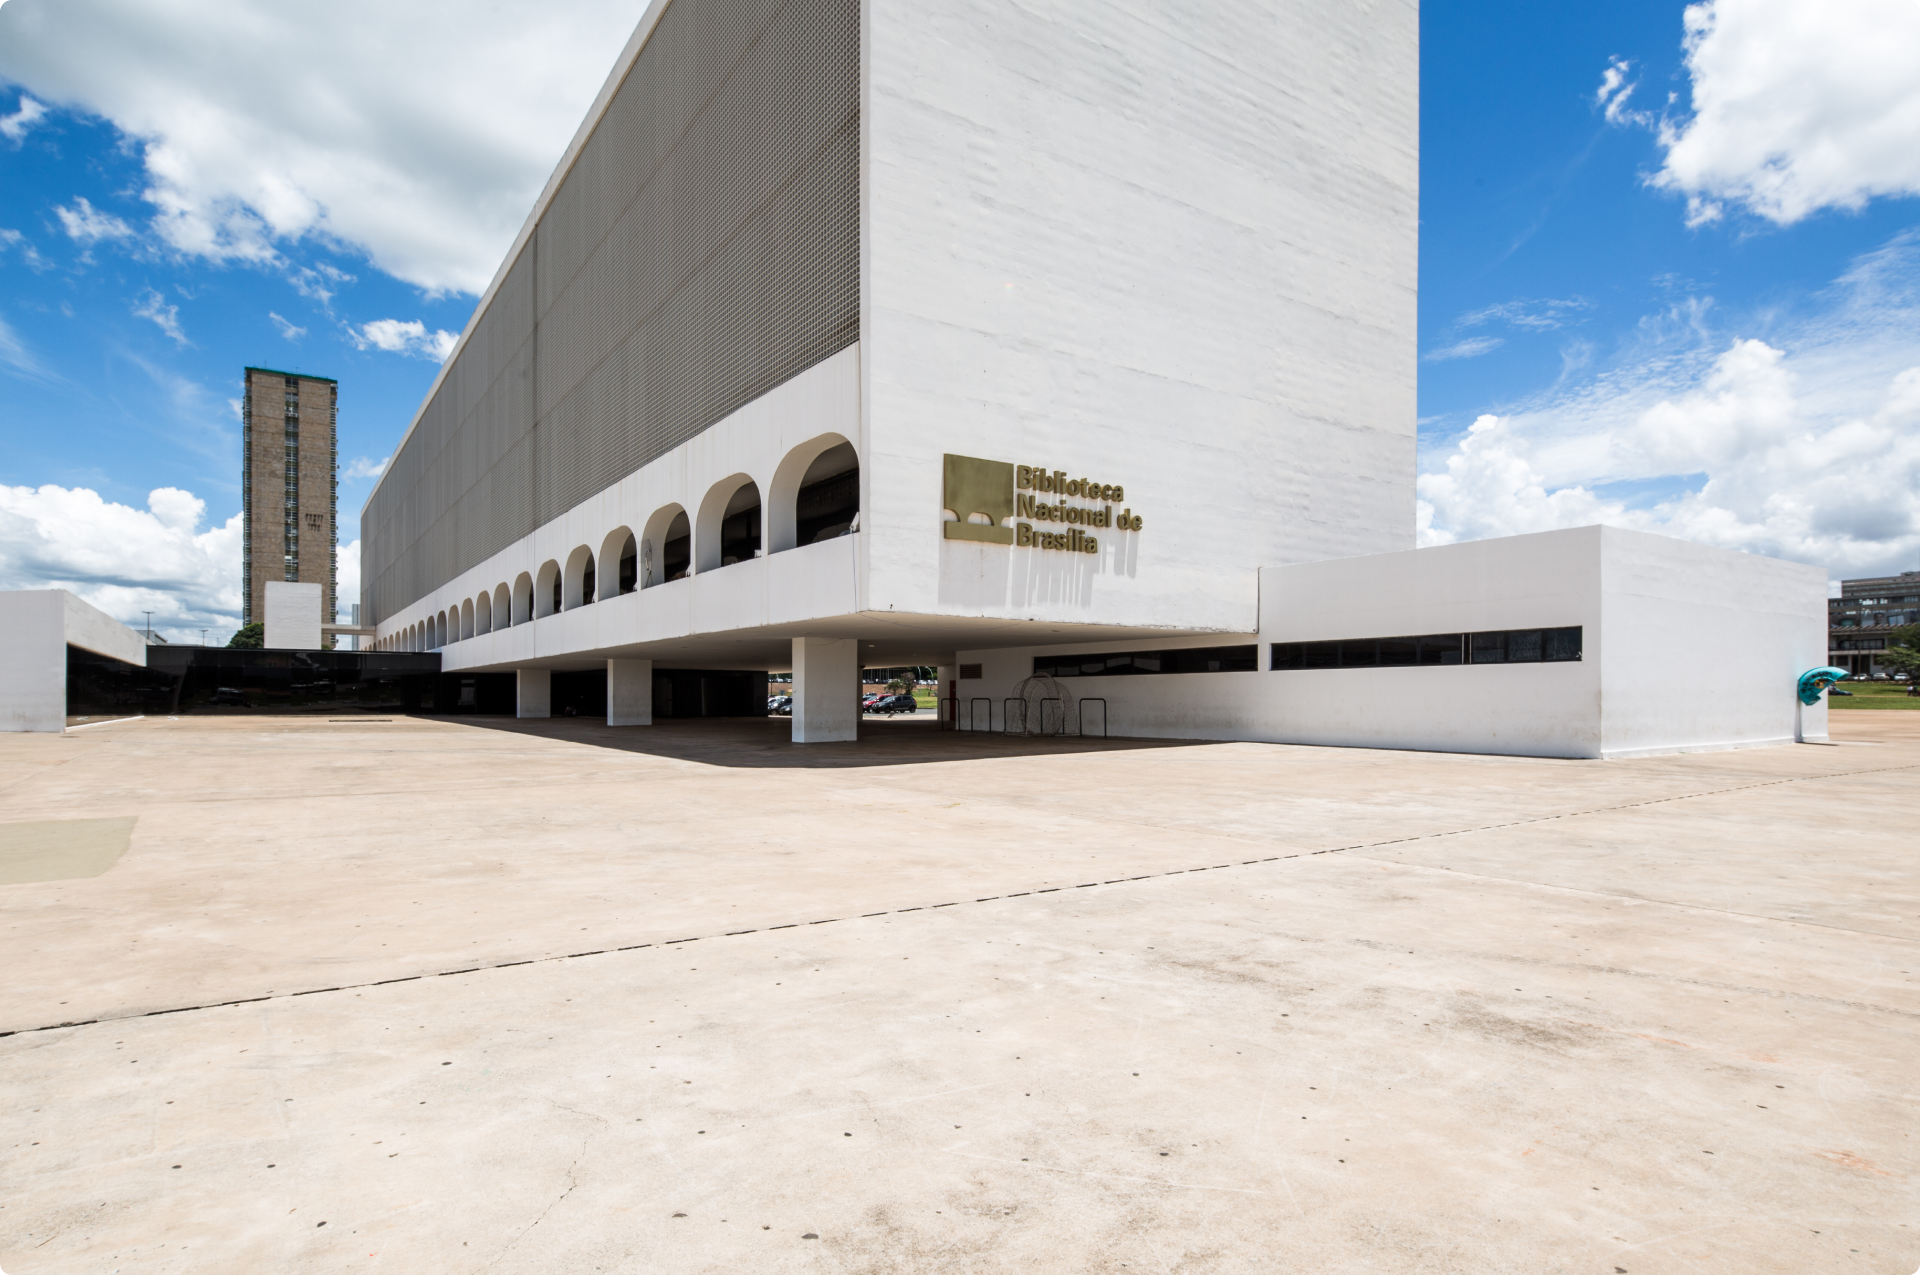 Exterior of the National Library of Brasilia